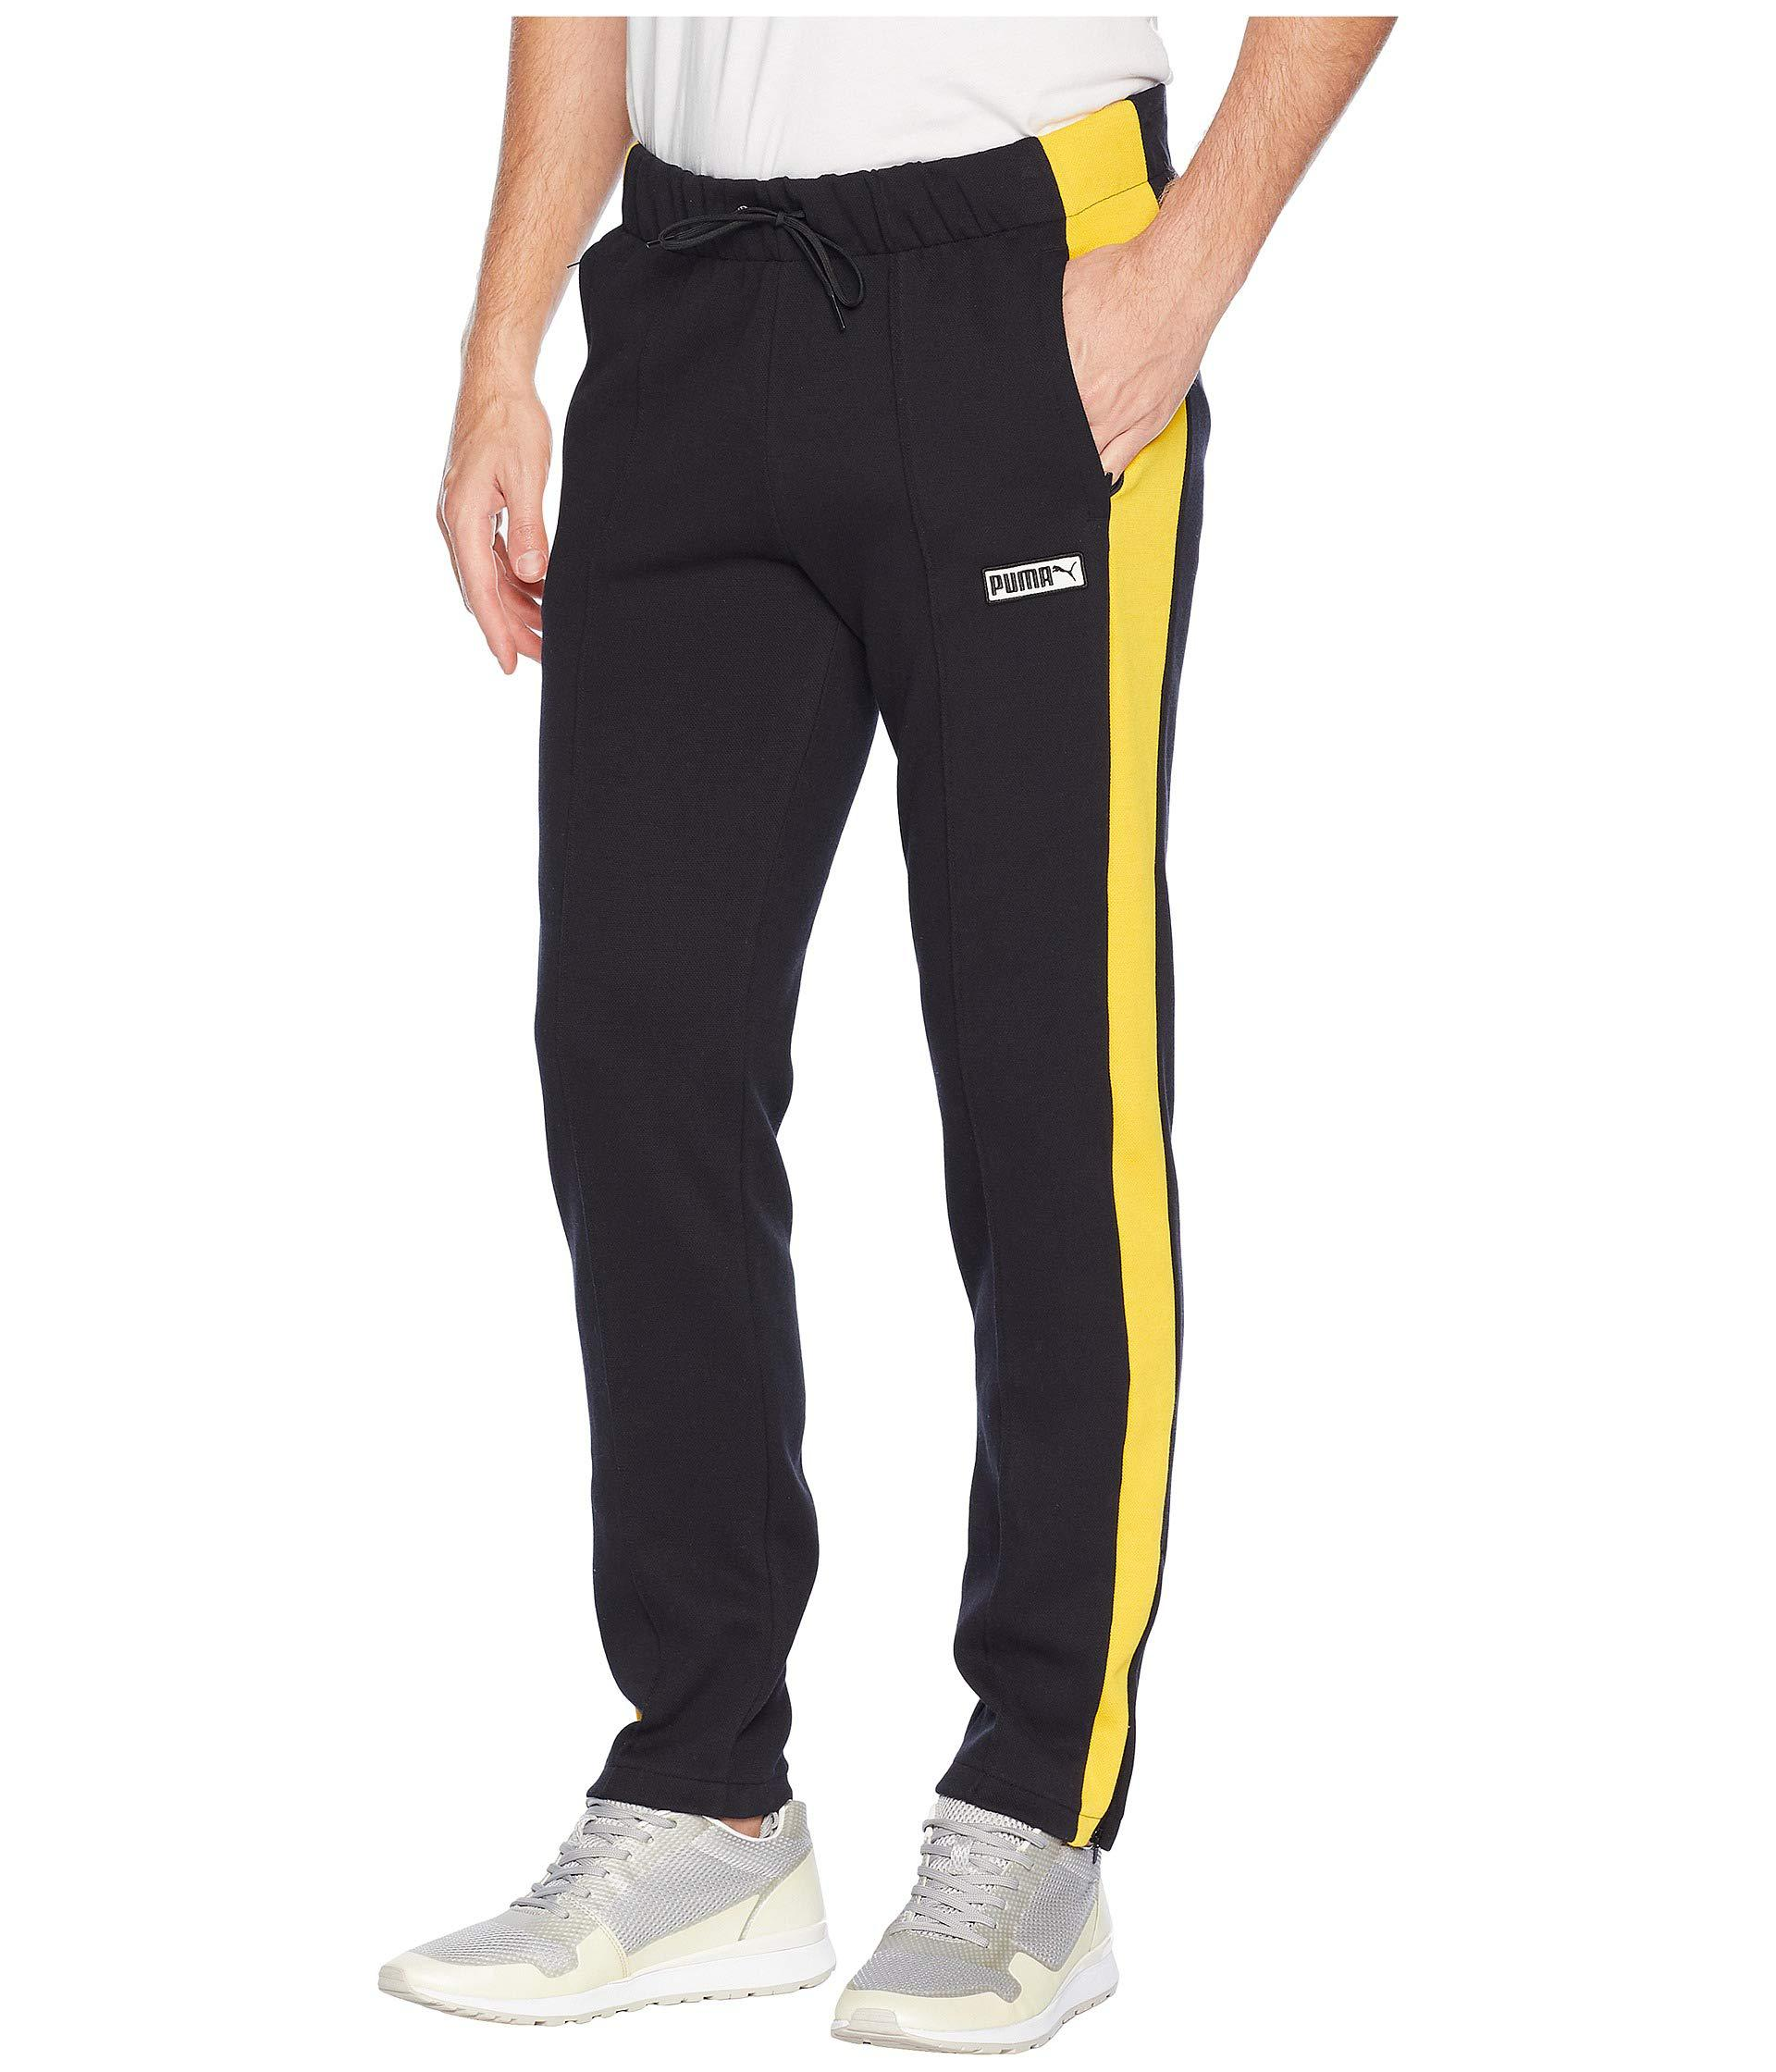 a3922a5ca431 Lyst - PUMA Spezial T7 Track Pants in Black for Men - Save 49%